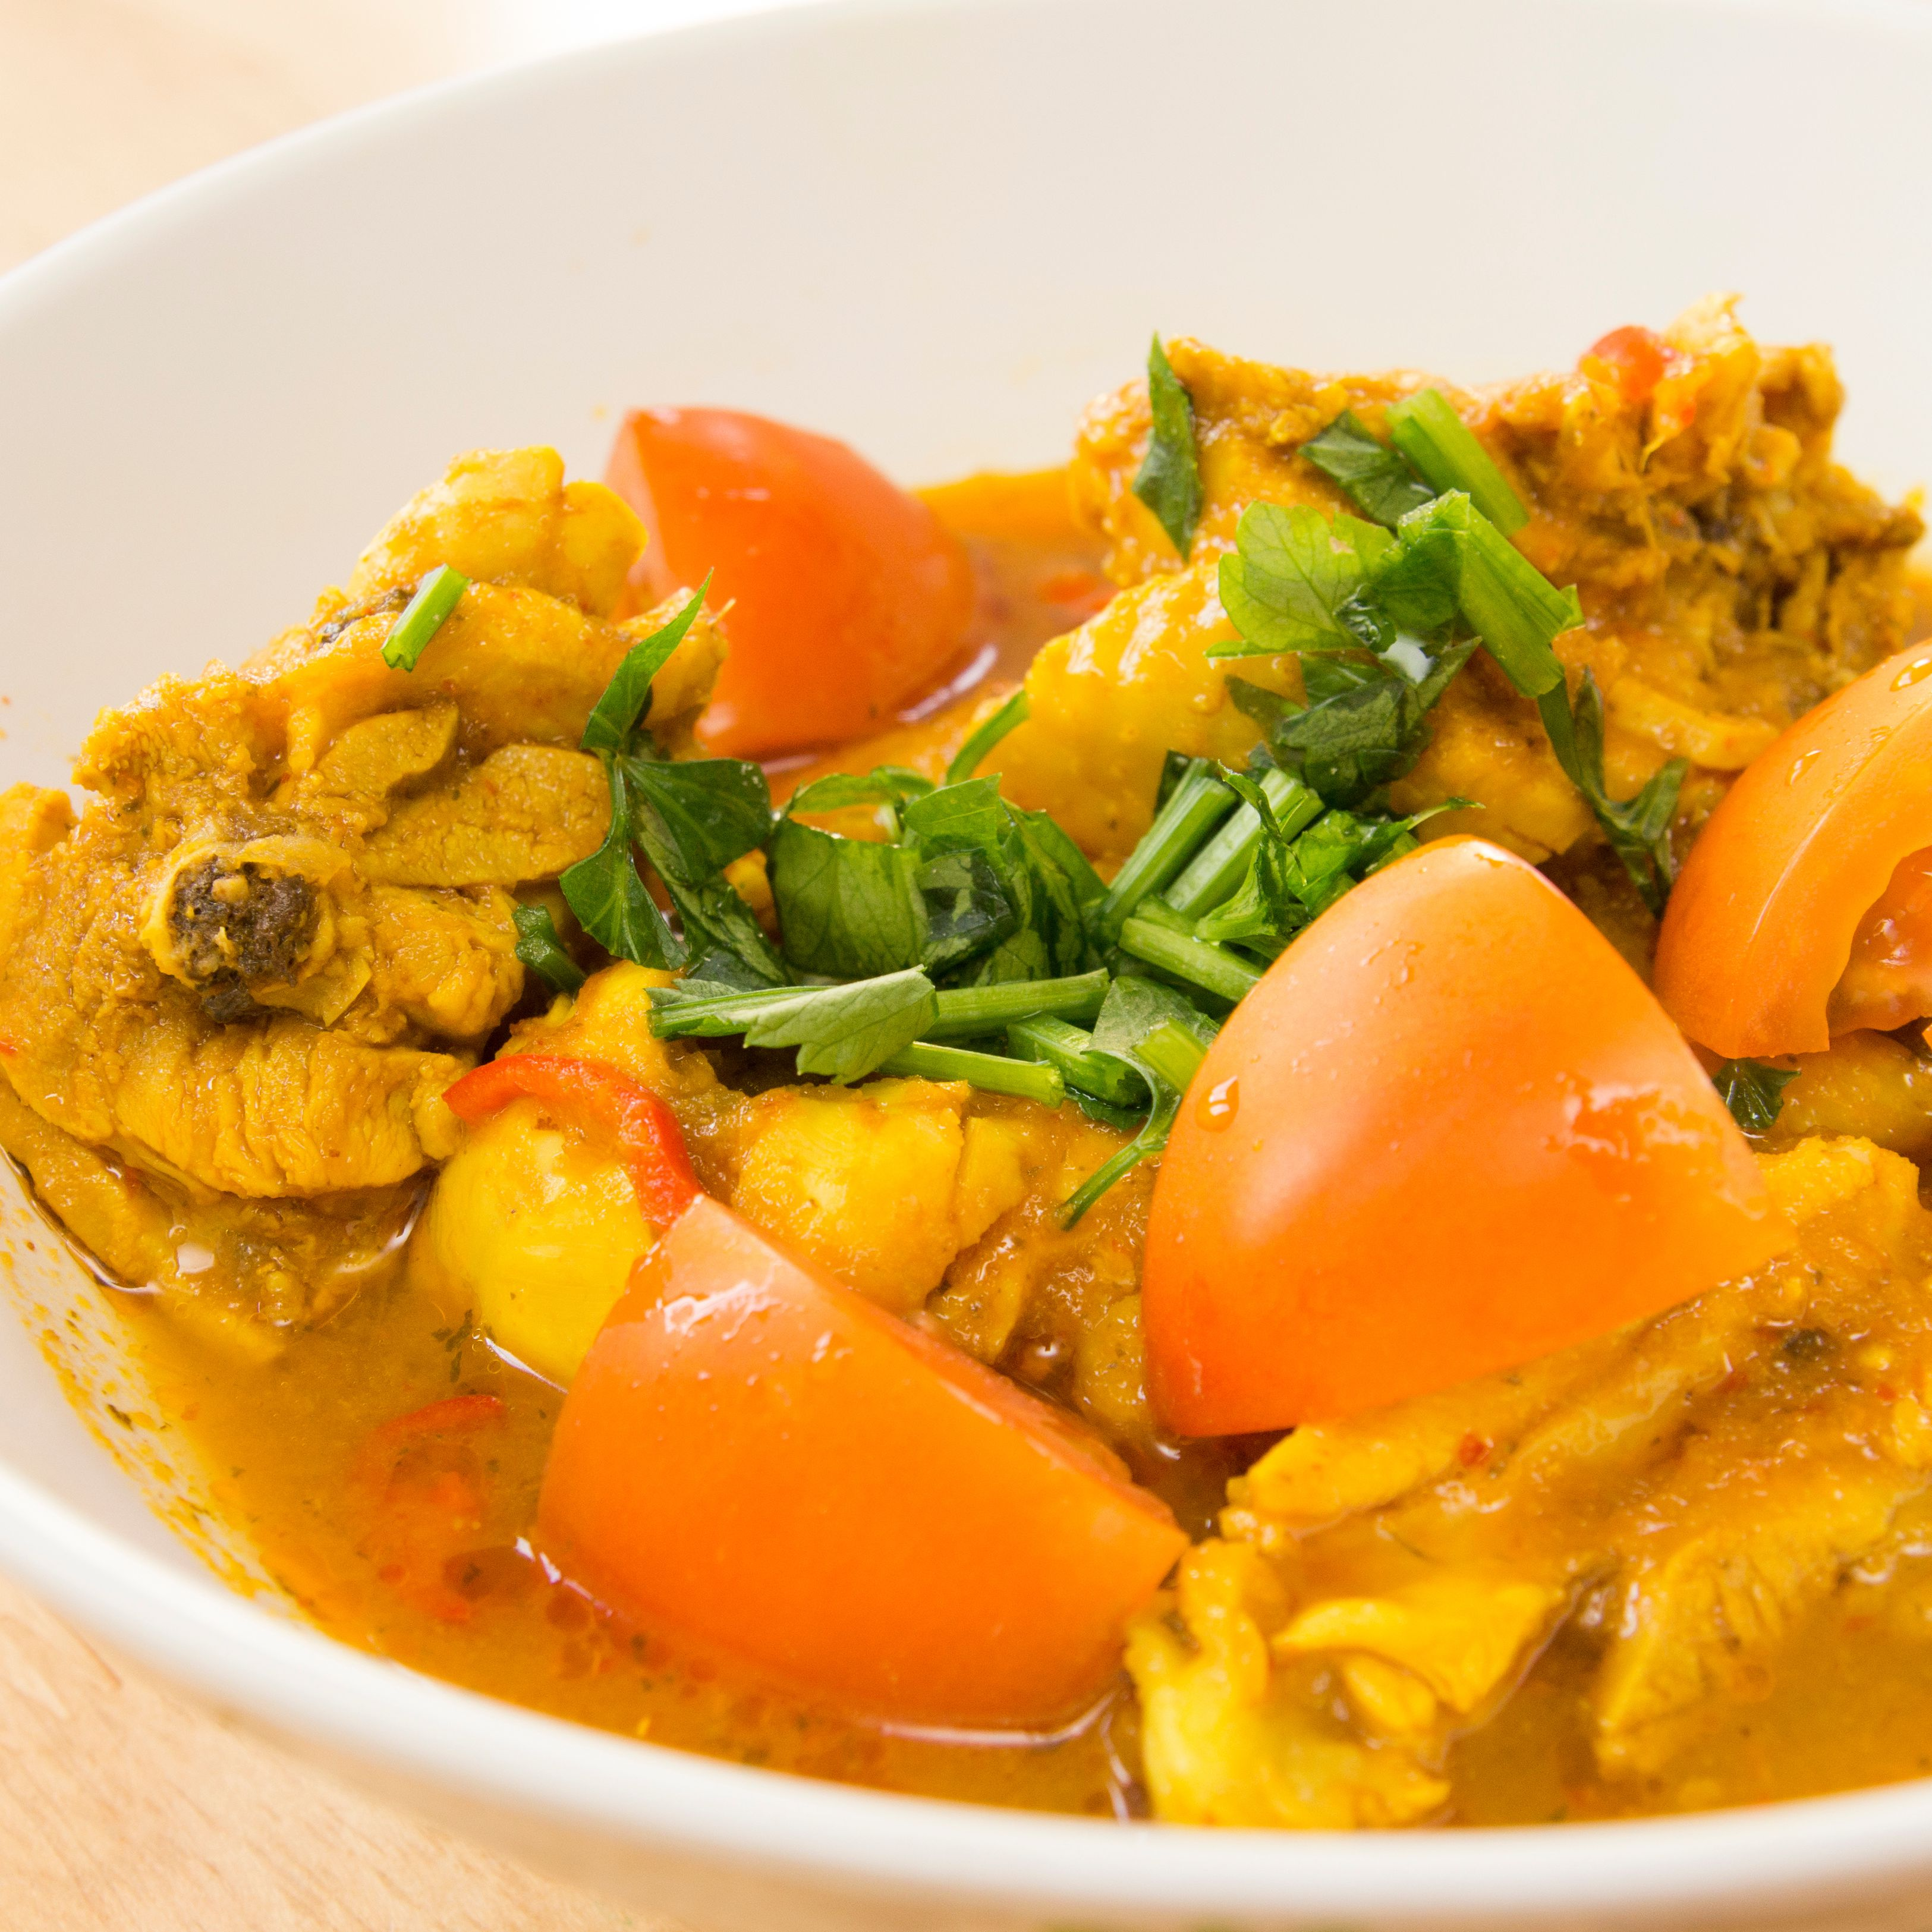 Baked Curried Chicken Breasts in a Coconut Milk Sauce